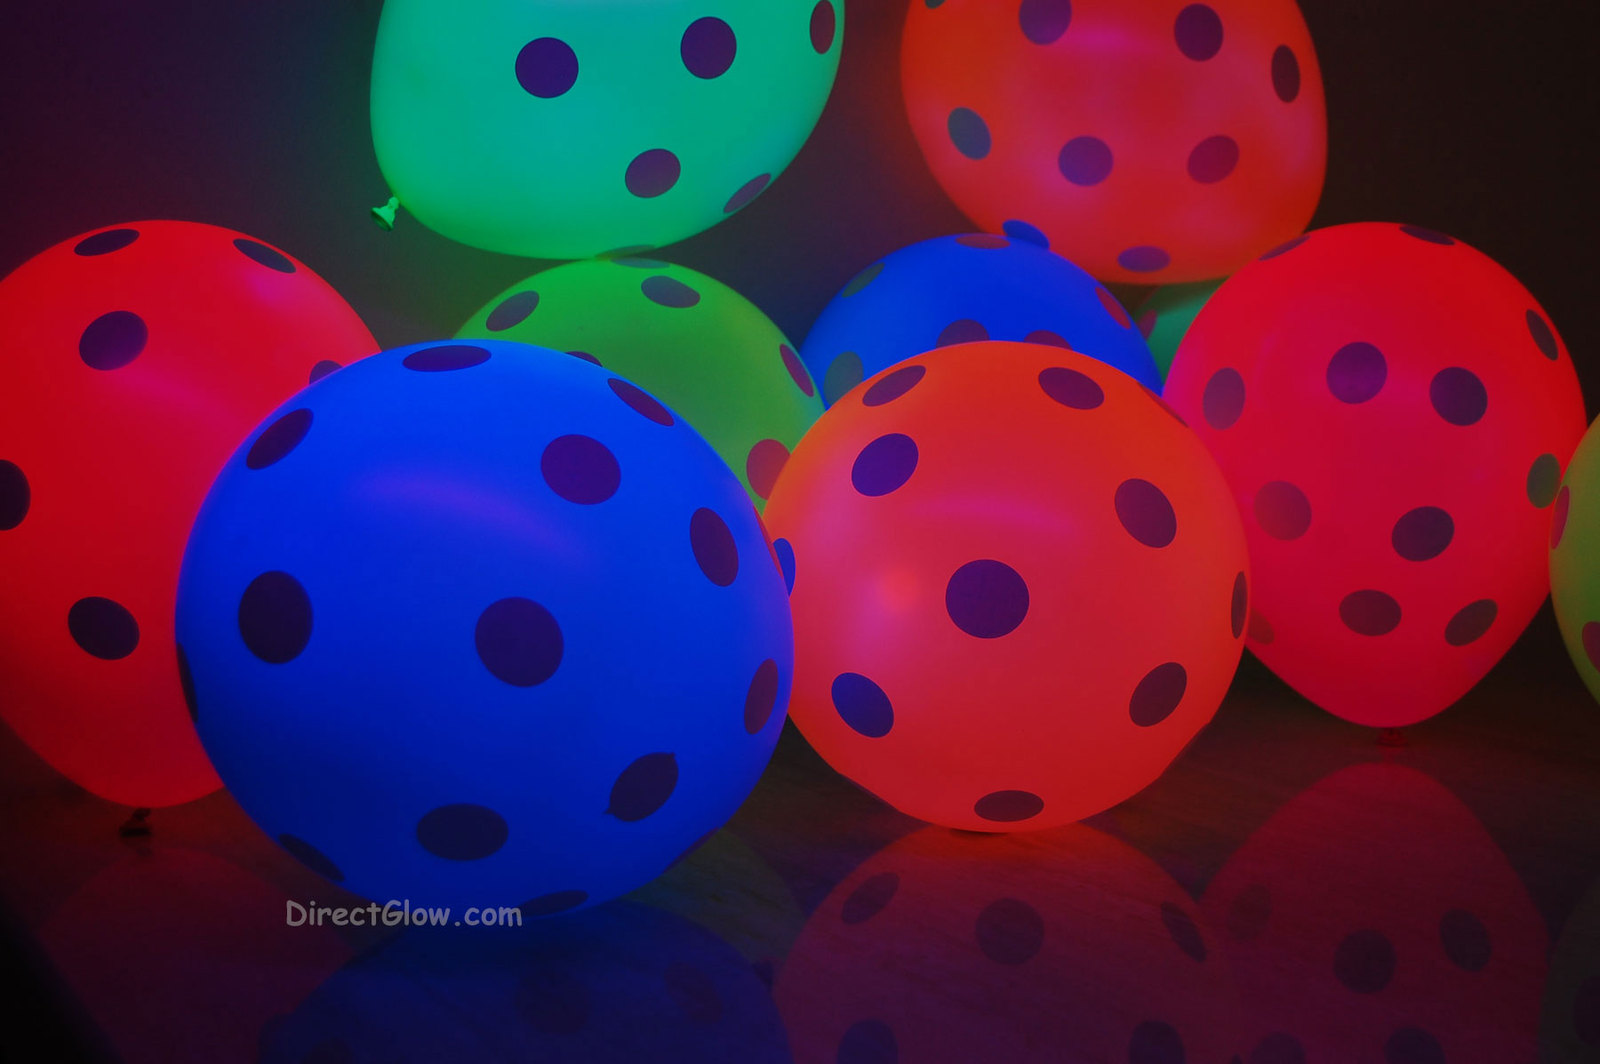 Neon uv blacklight polka dot balloons4